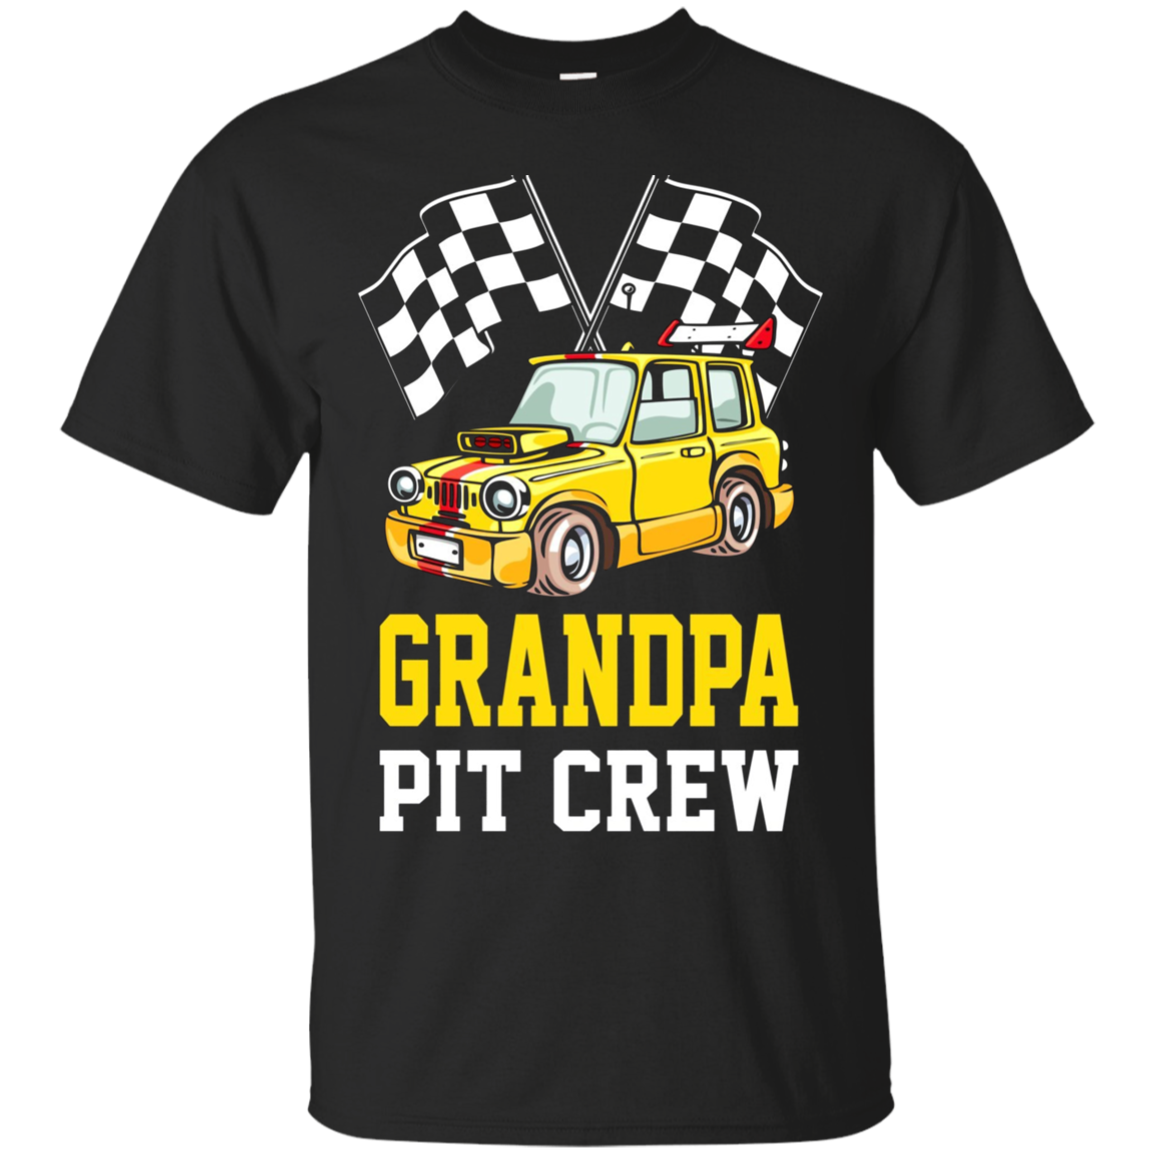 Pit Crew GRANDPA Back Print Long Sleeve T-Shirt Race Car